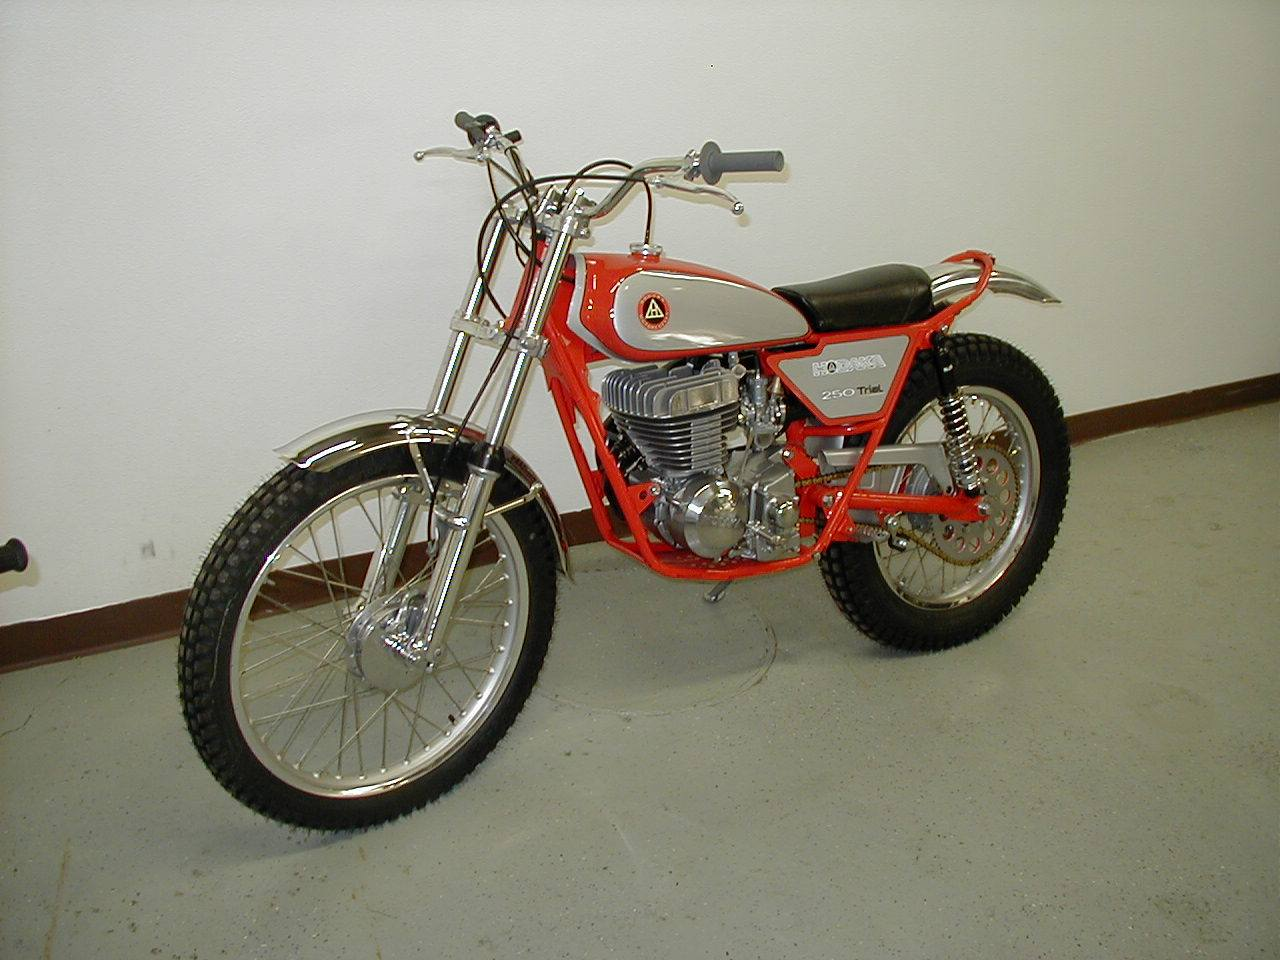 Vintage Trials Bike 89